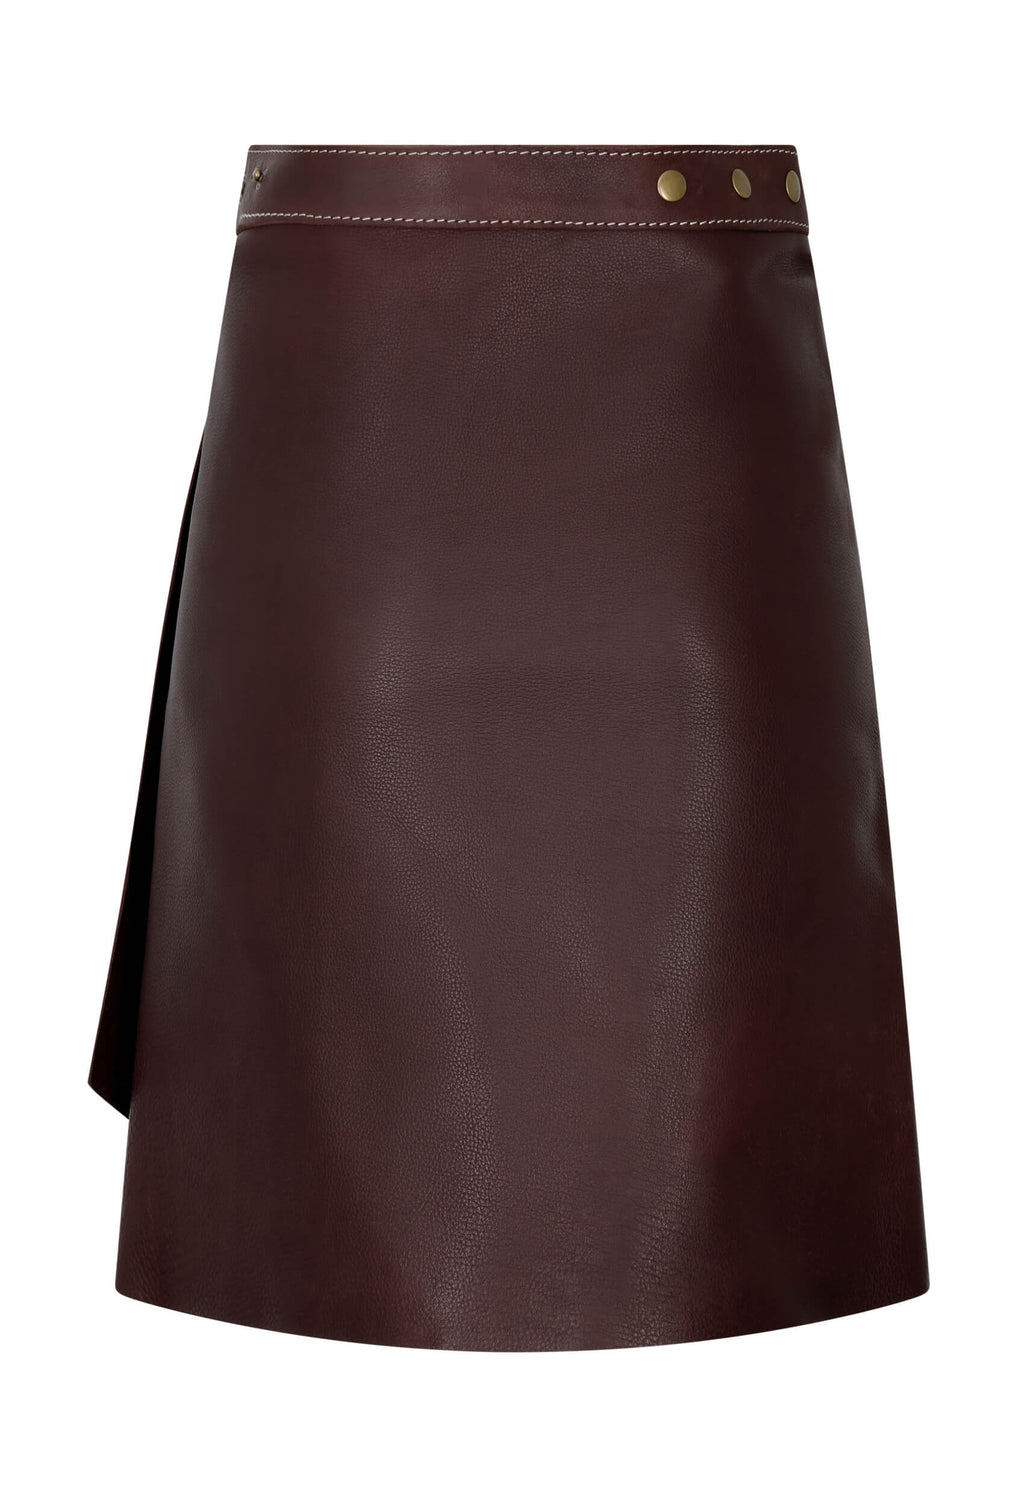 chocolate-brown-leather-wrap-skirt